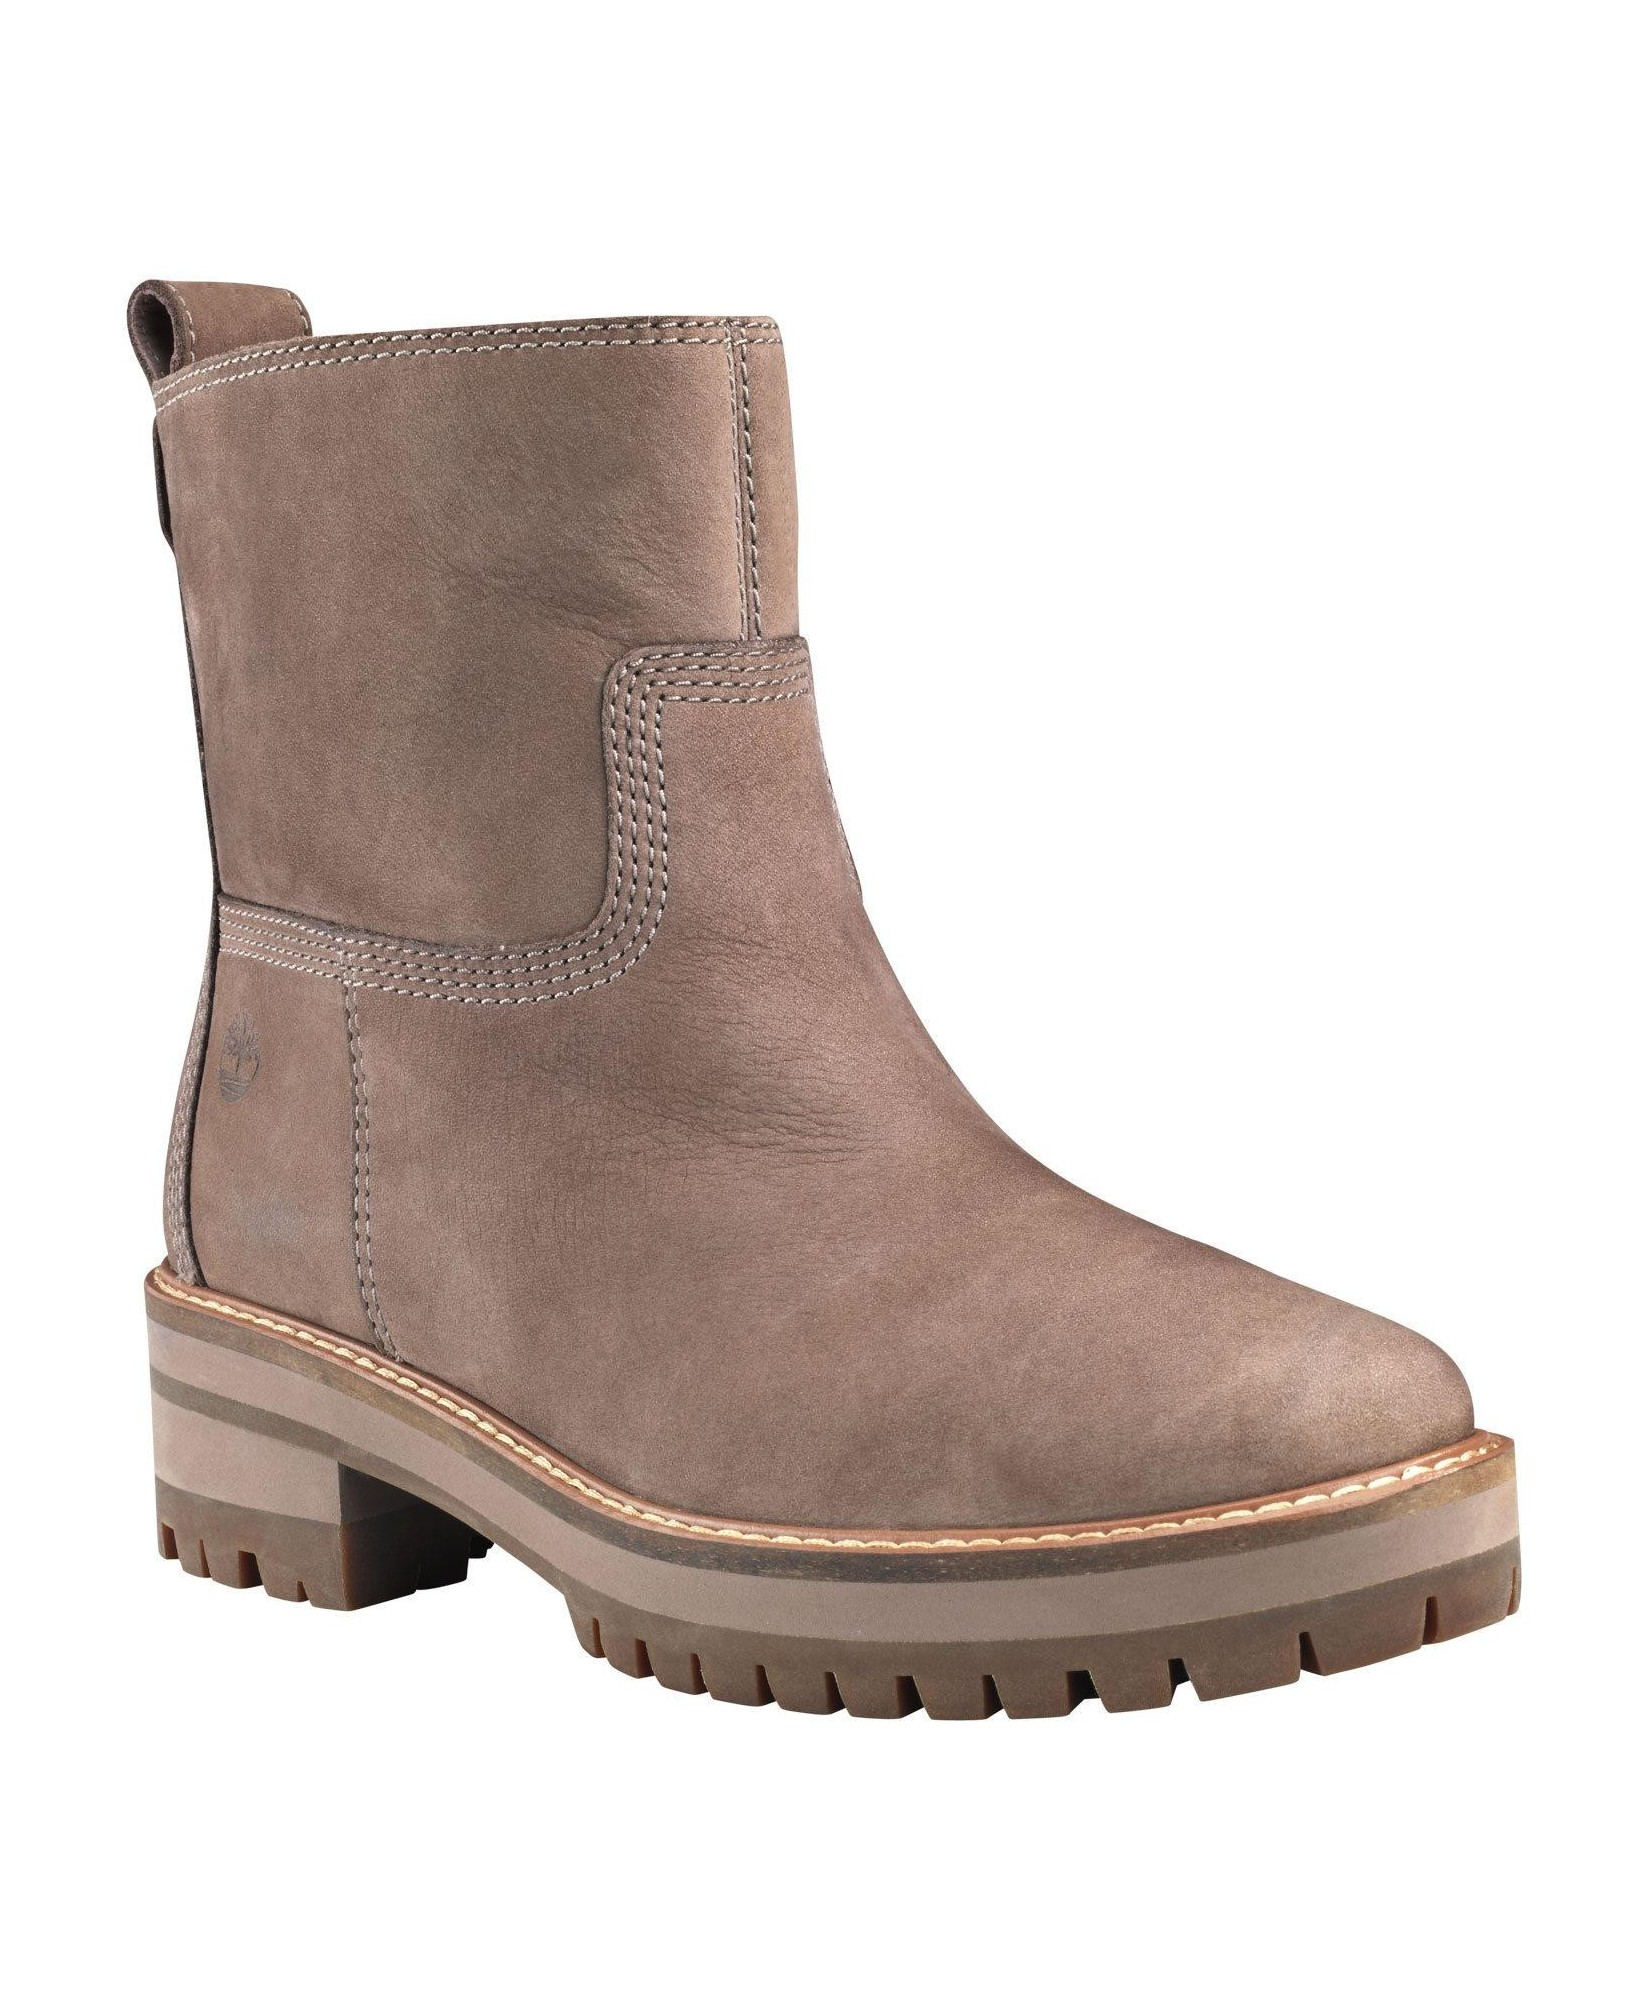 BOTA CONFORTABLE COURMAYEUR VALLEY PARA MUJER EN GRIS BOTA CONFORTABLE COURMAYEUR VALLEY PARA MUJER EN GRIS